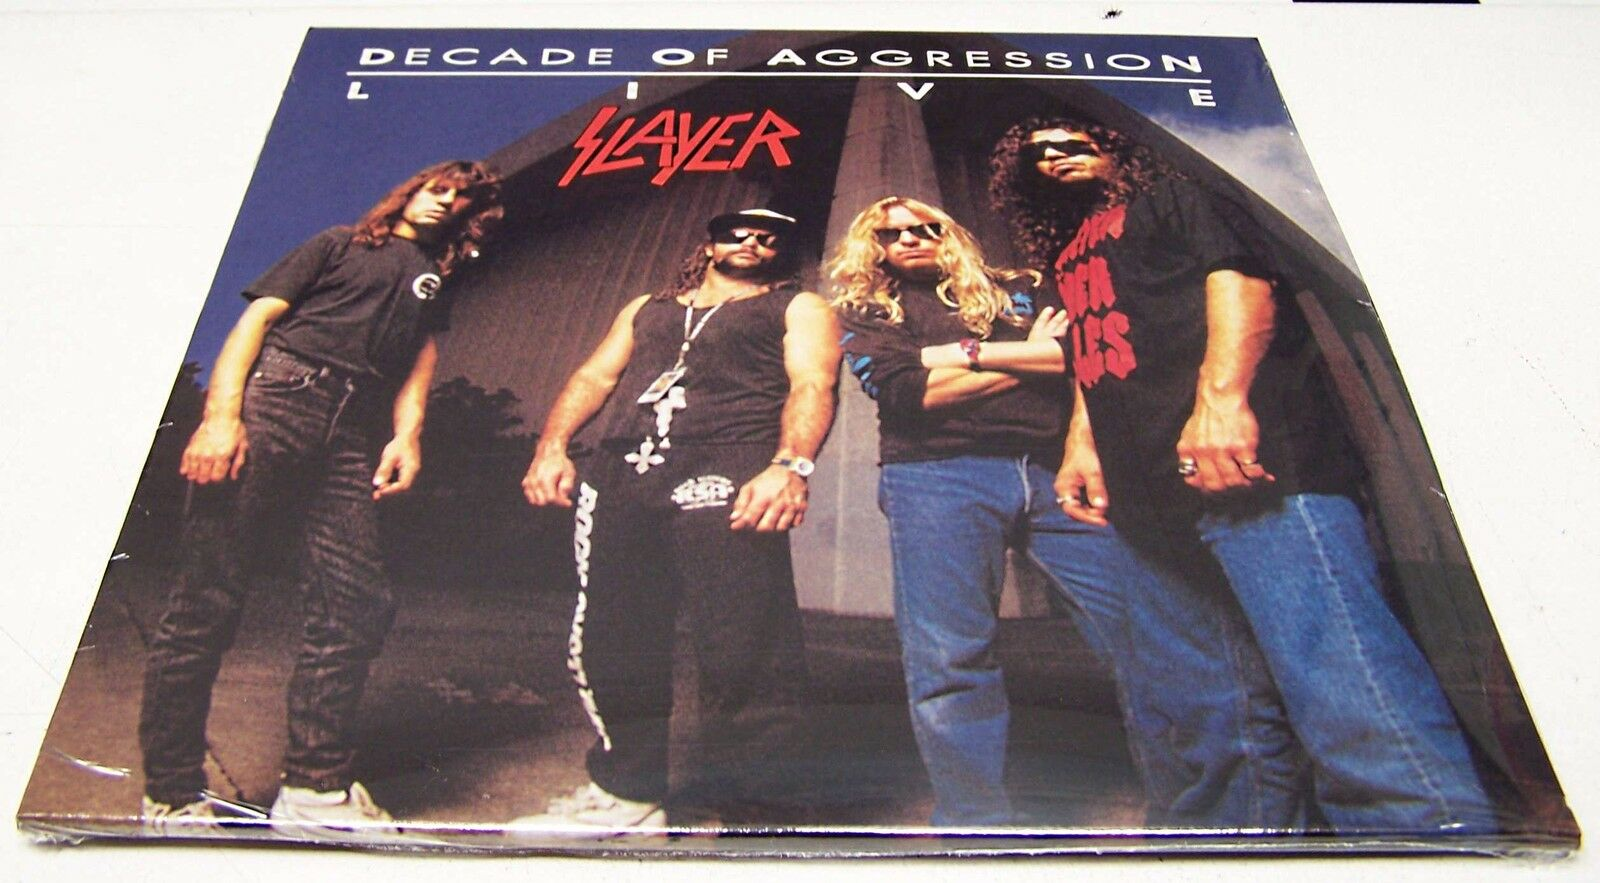 SLAYER - DECADE of AGGRESSION LIVE - 2 LP VINYL 180 Grammi LTD ED SIGILLATO MINT